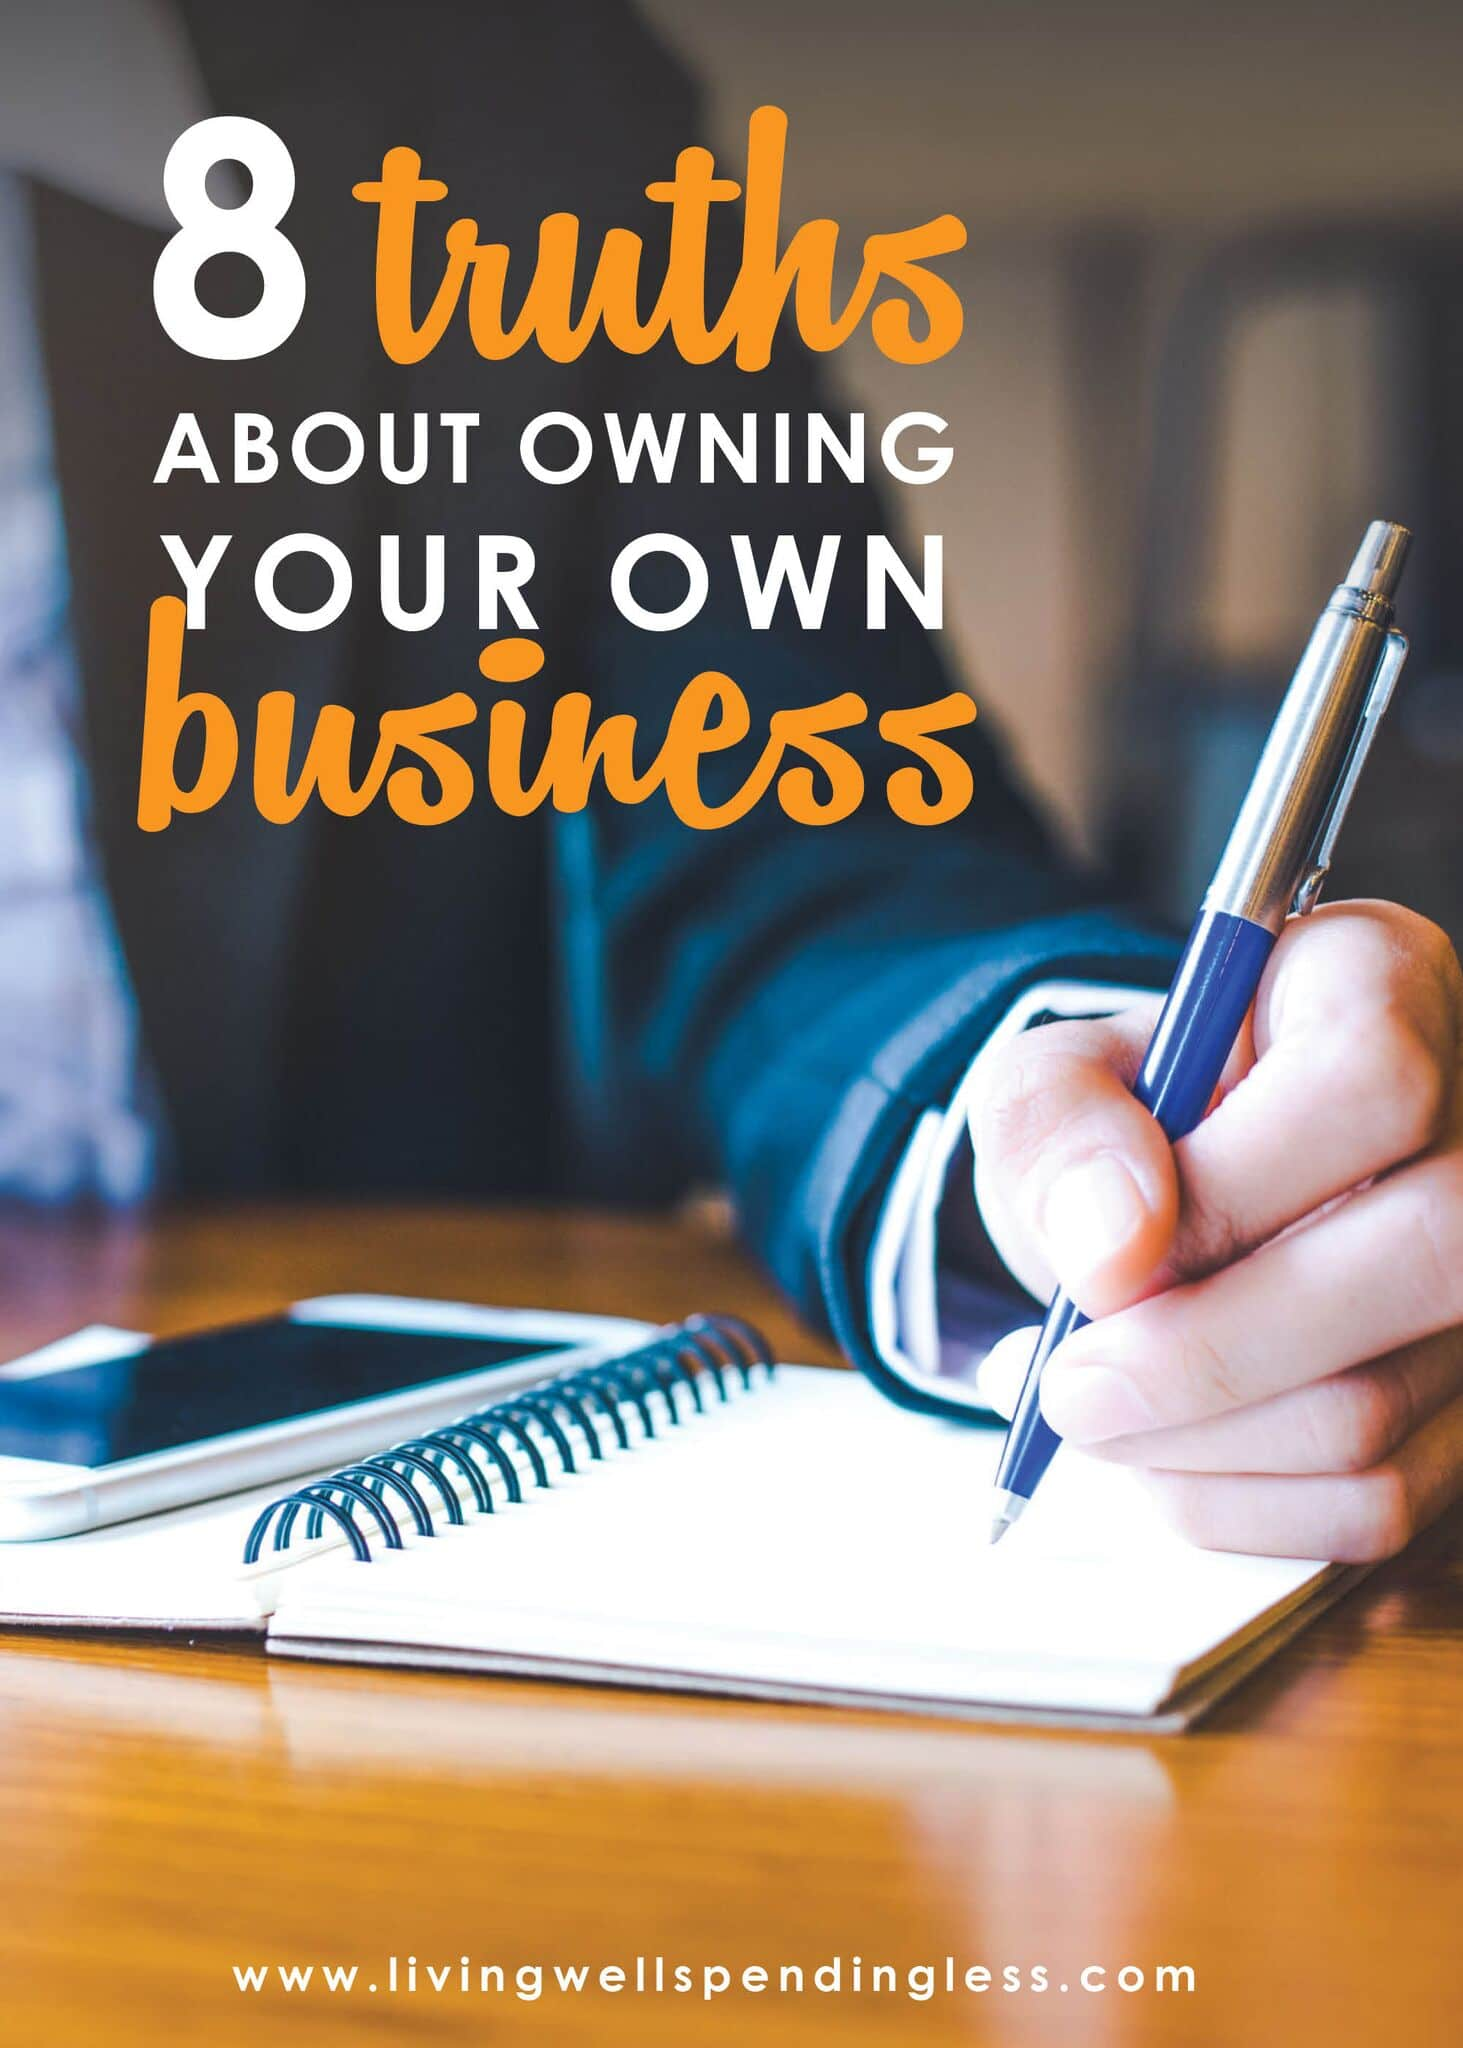 Are You Ready to Be Your Own Boss? ⎢ 8 Truths About Owning Your Own Business⎢Mindset⎢Online Business⎢Confidence⎢Start a Business⎢Work at Home Mom⎢Work from Home